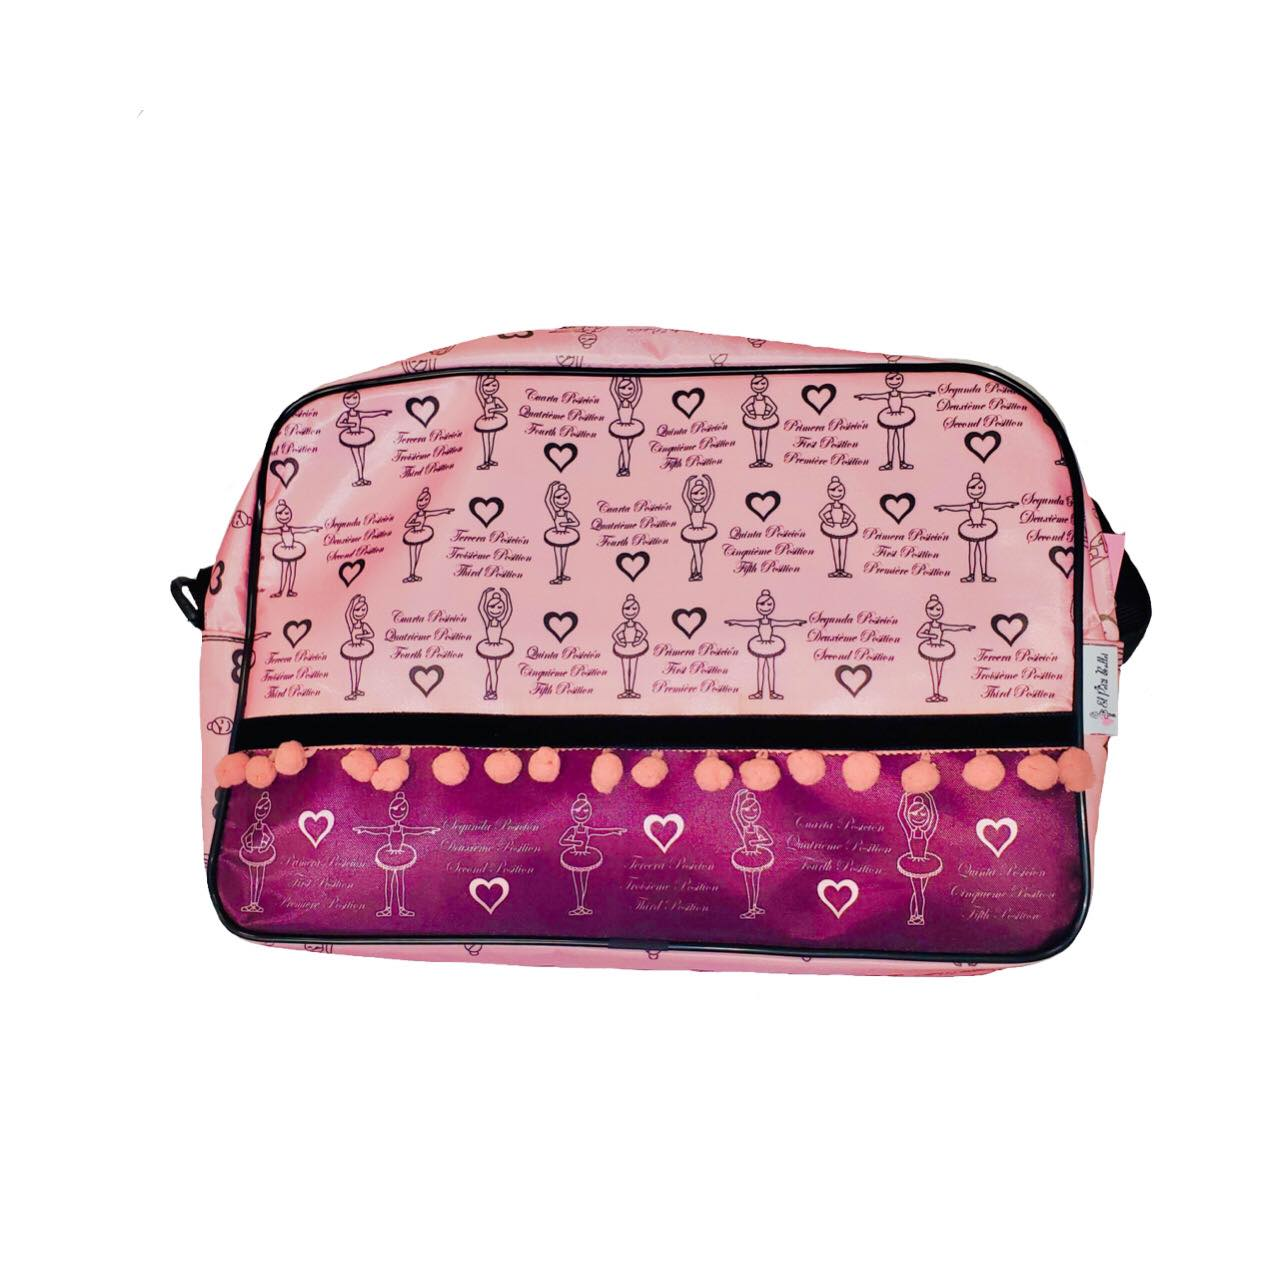 Printed Pom Pom Trim Duffle Bag - Pink and Black